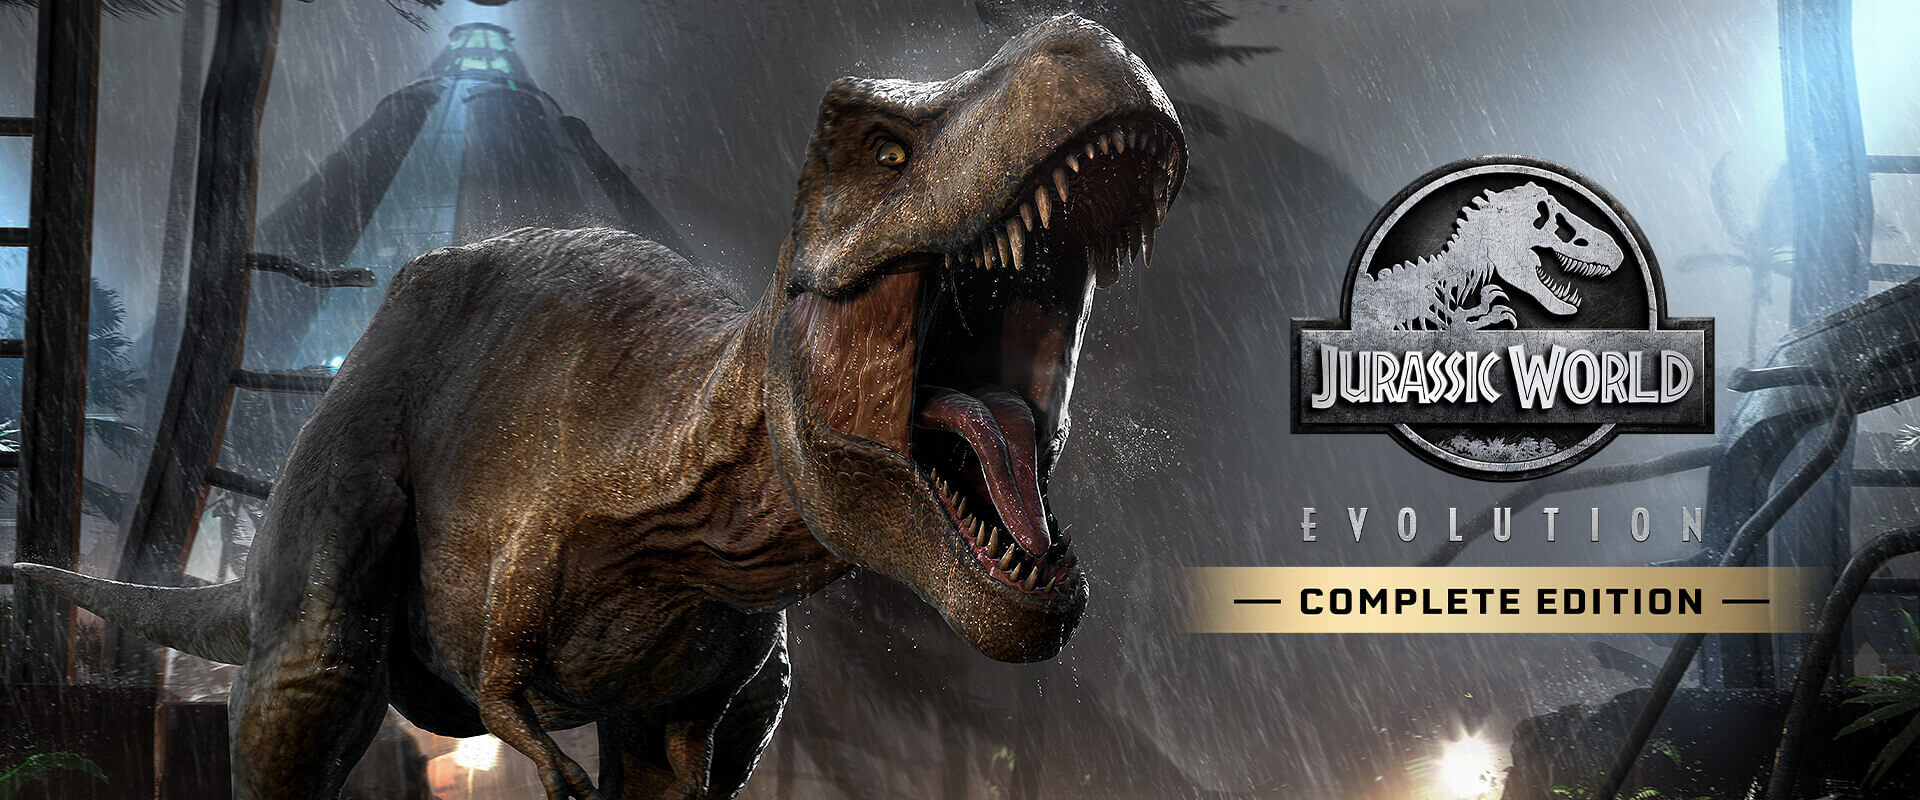 https://www.universalbranddevelopment.com/storage/jurassic-world-evolution-complete-edition-desktop-5f9758832d309.jpg